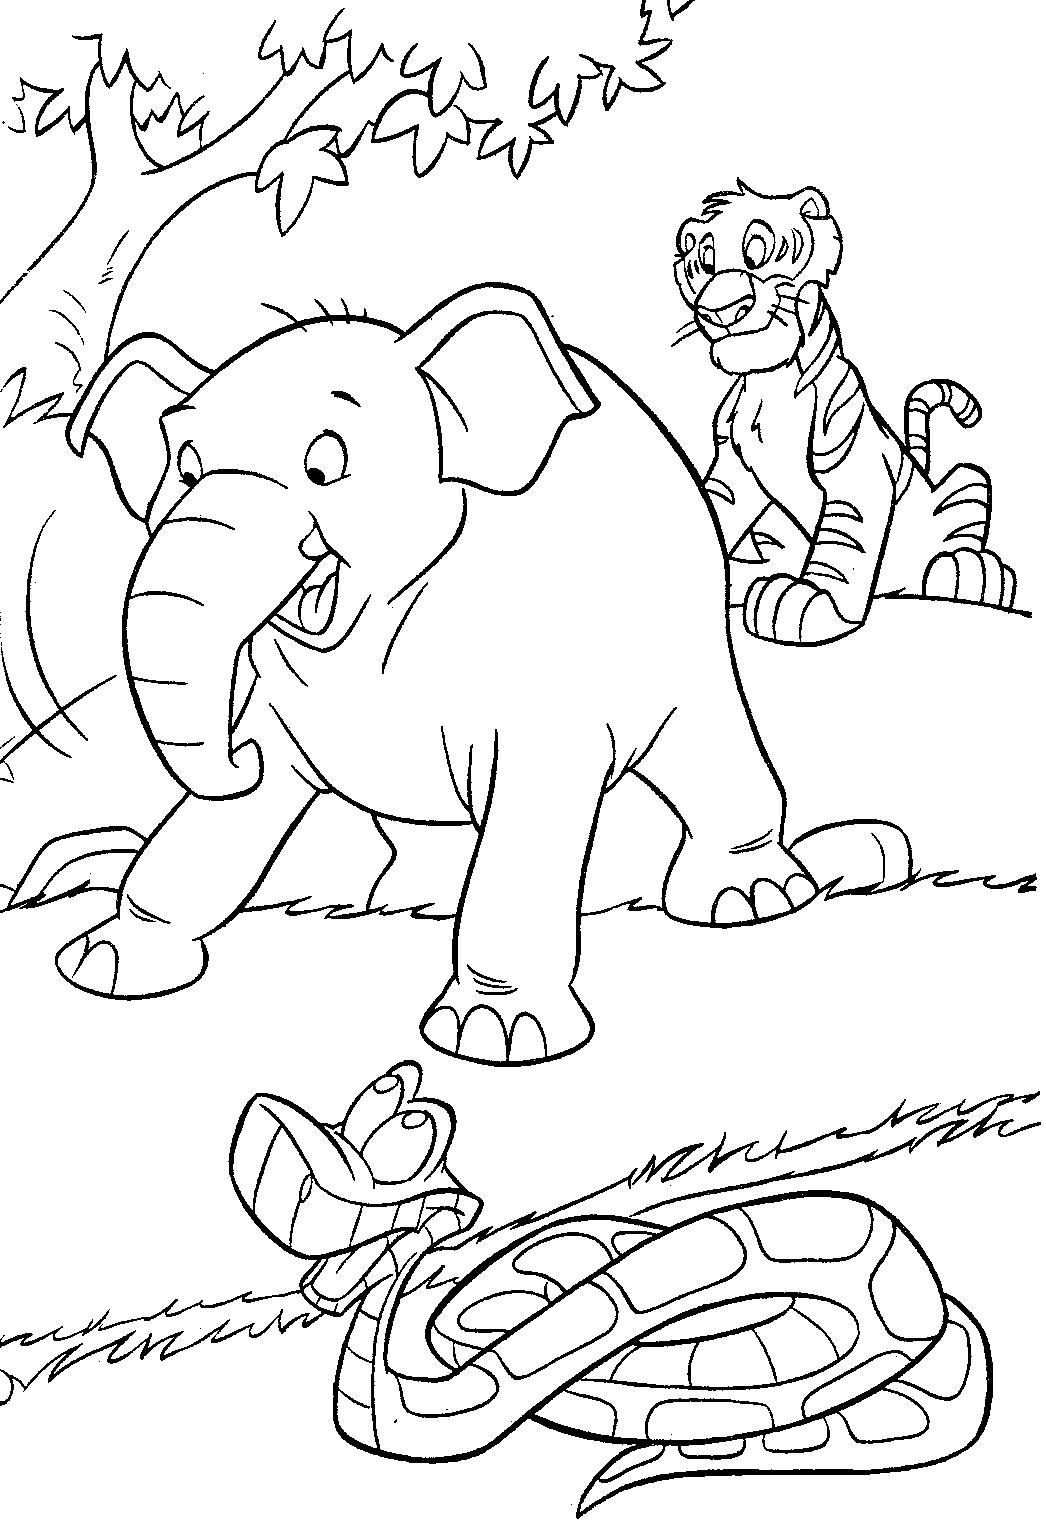 book coloring pages - photo#38